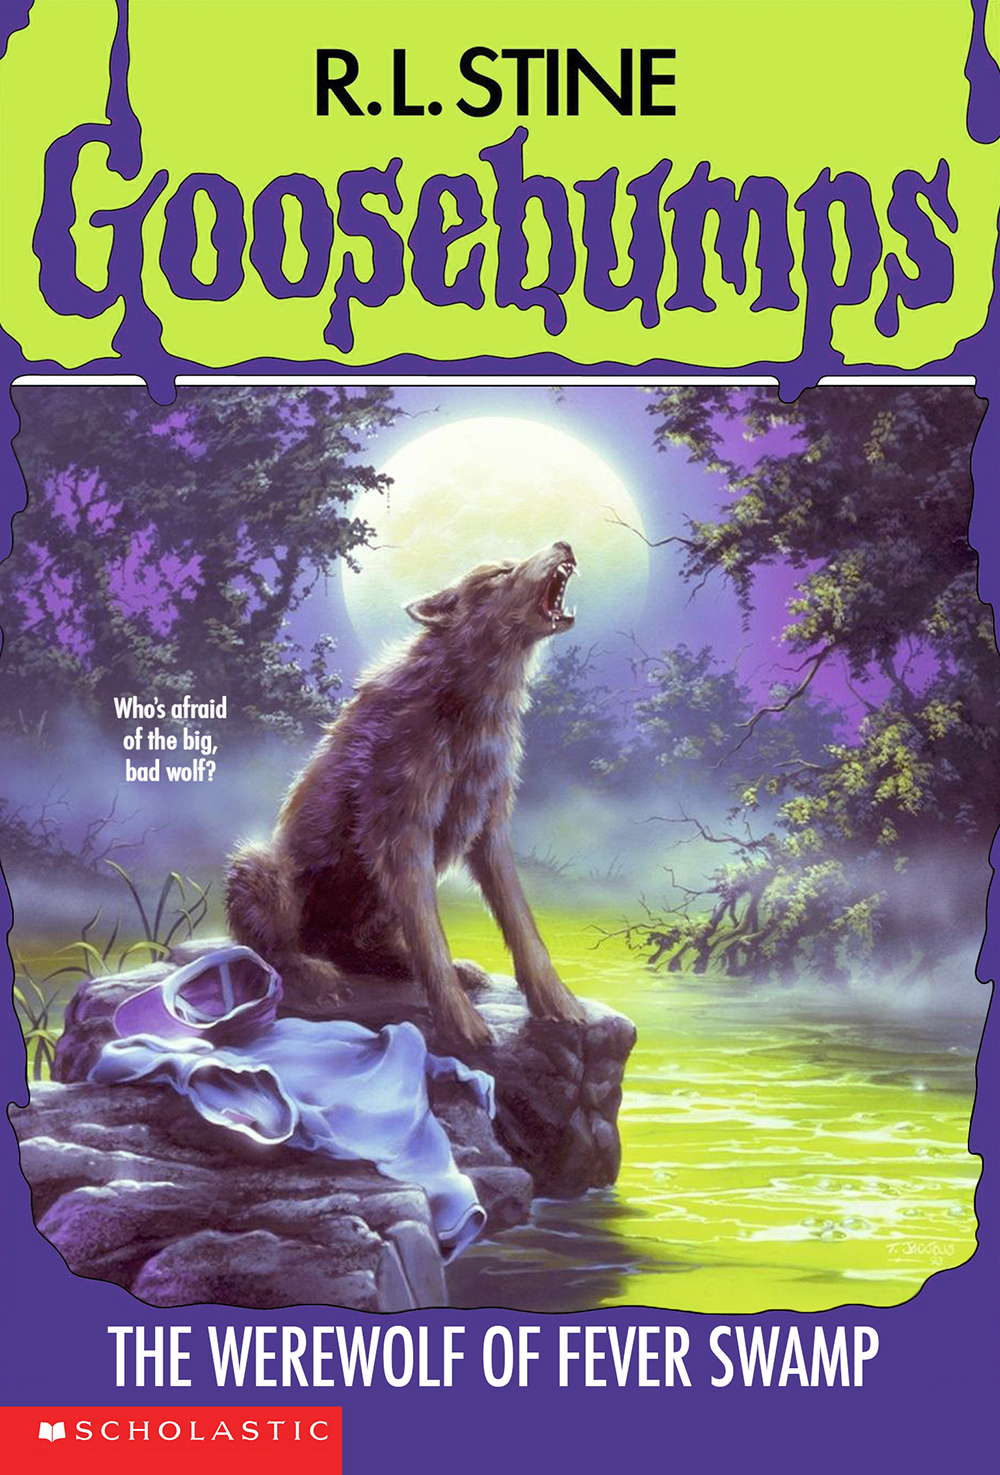 Goosebumps Images The Werewolf Of Fever Swamp HD Wallpaper And Background Photos